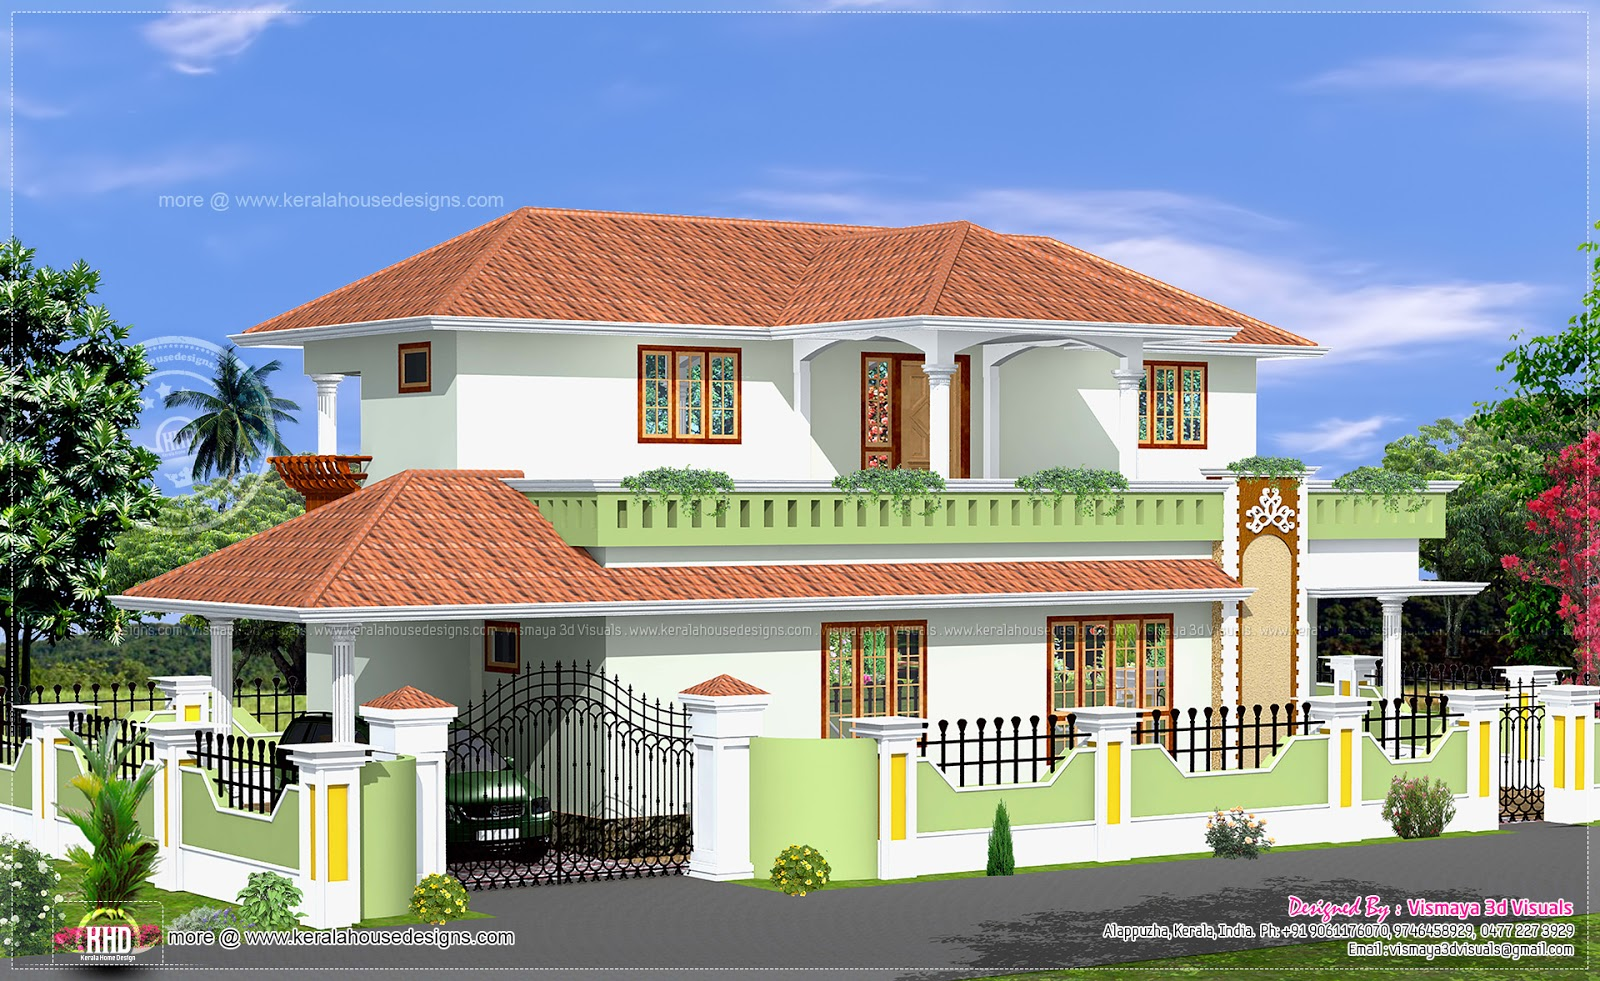 Simple house designs kerala style home design and style Simple home designs photos